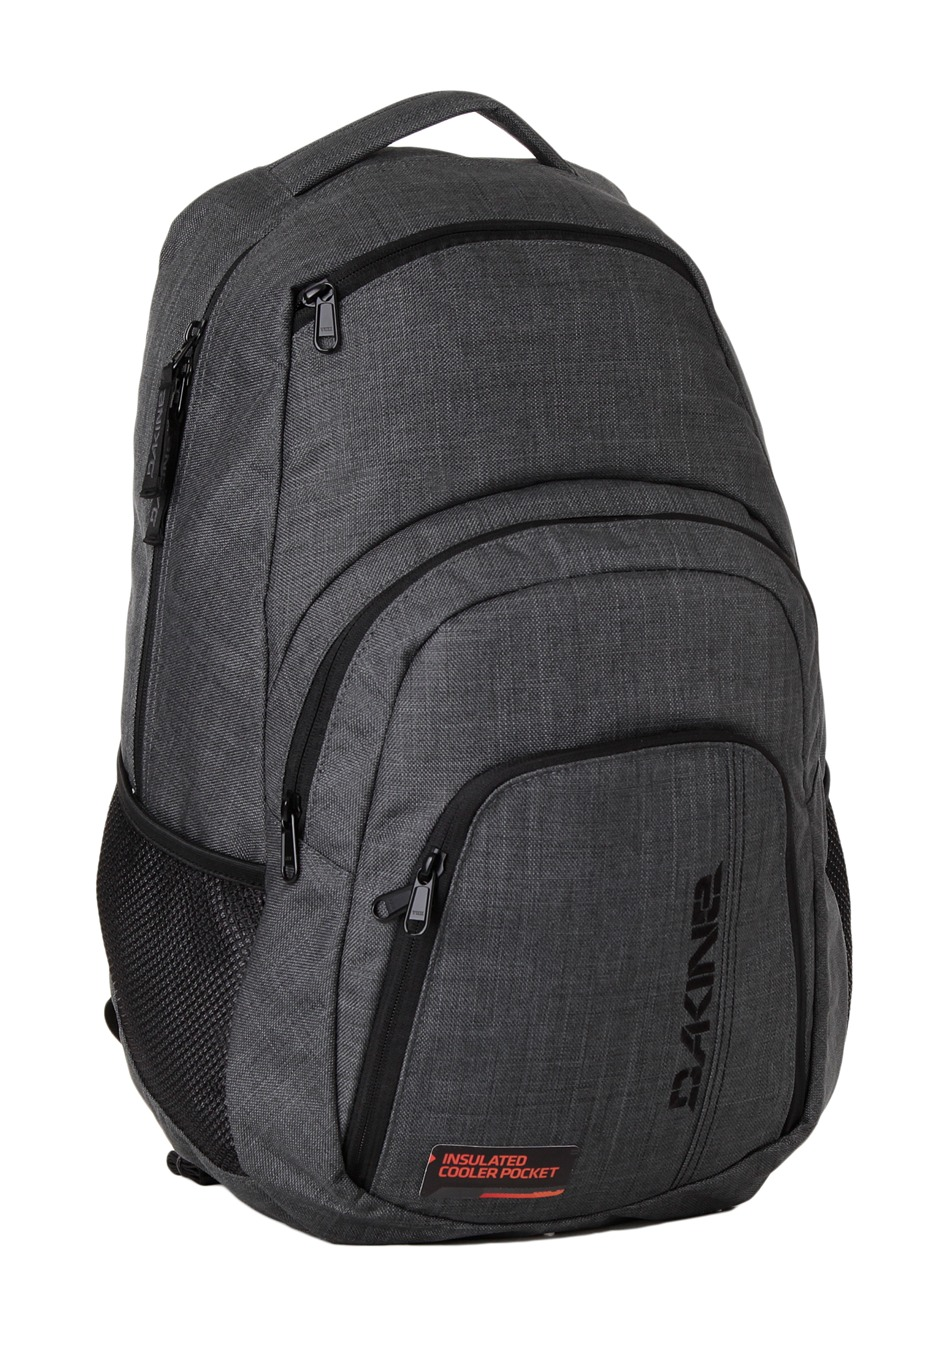 Dakine - Campus Carbon - Backpack - Impericon.com Worldwide